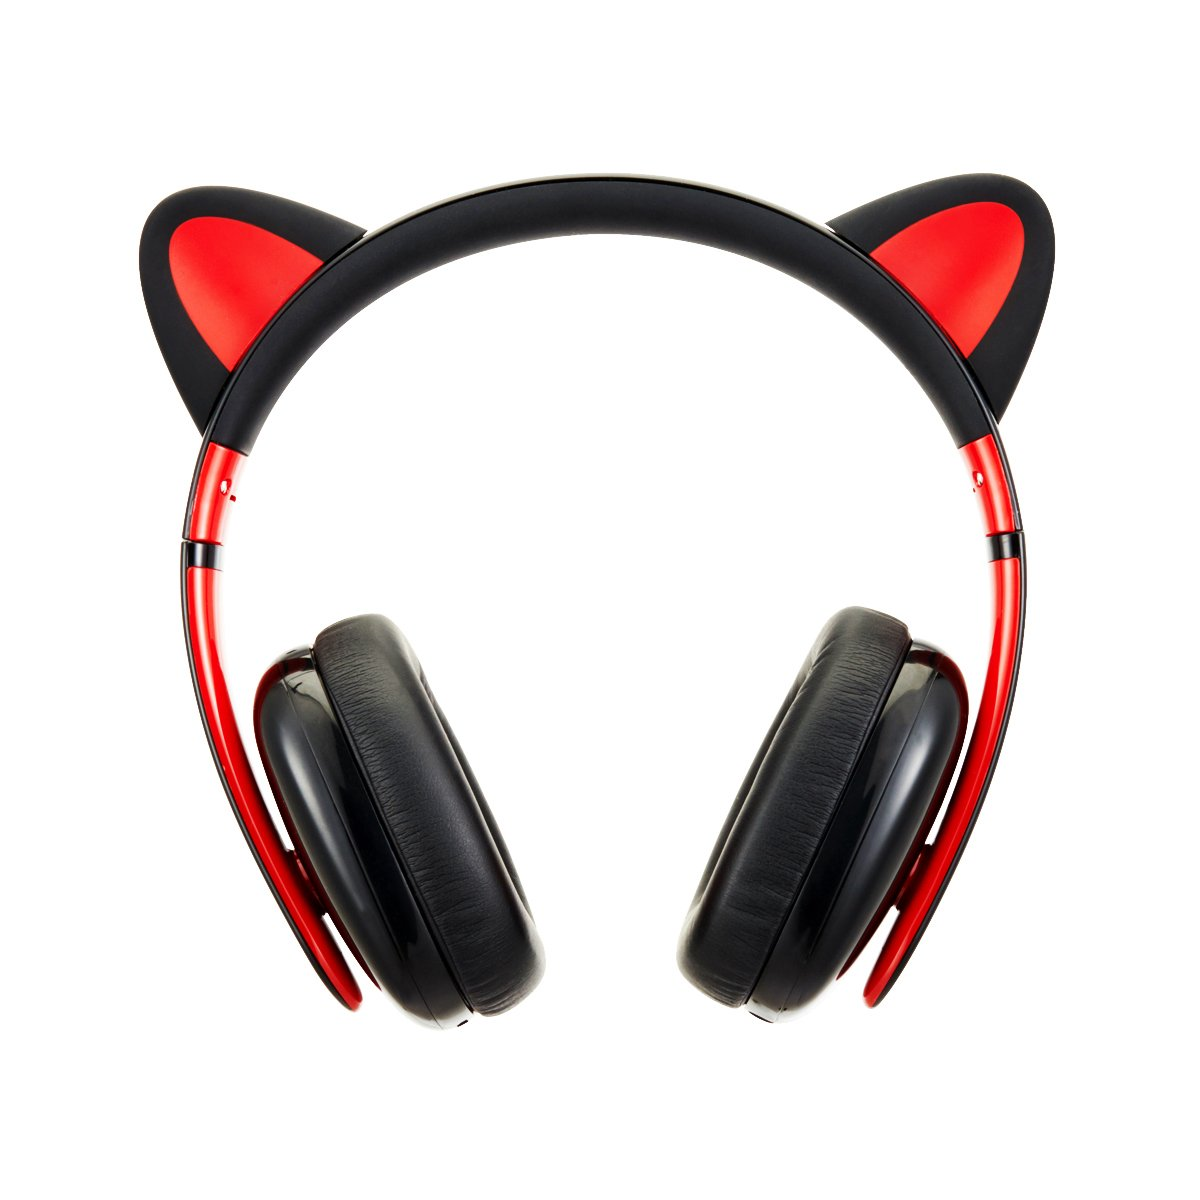 Amazon.com: Censi Wired Cat Ear Headphones, Over Ear Wired Noise Canceling  Headphones for Smartphone, PC, Christmas Gift for Her (Black+Red, Wired):  Home ...